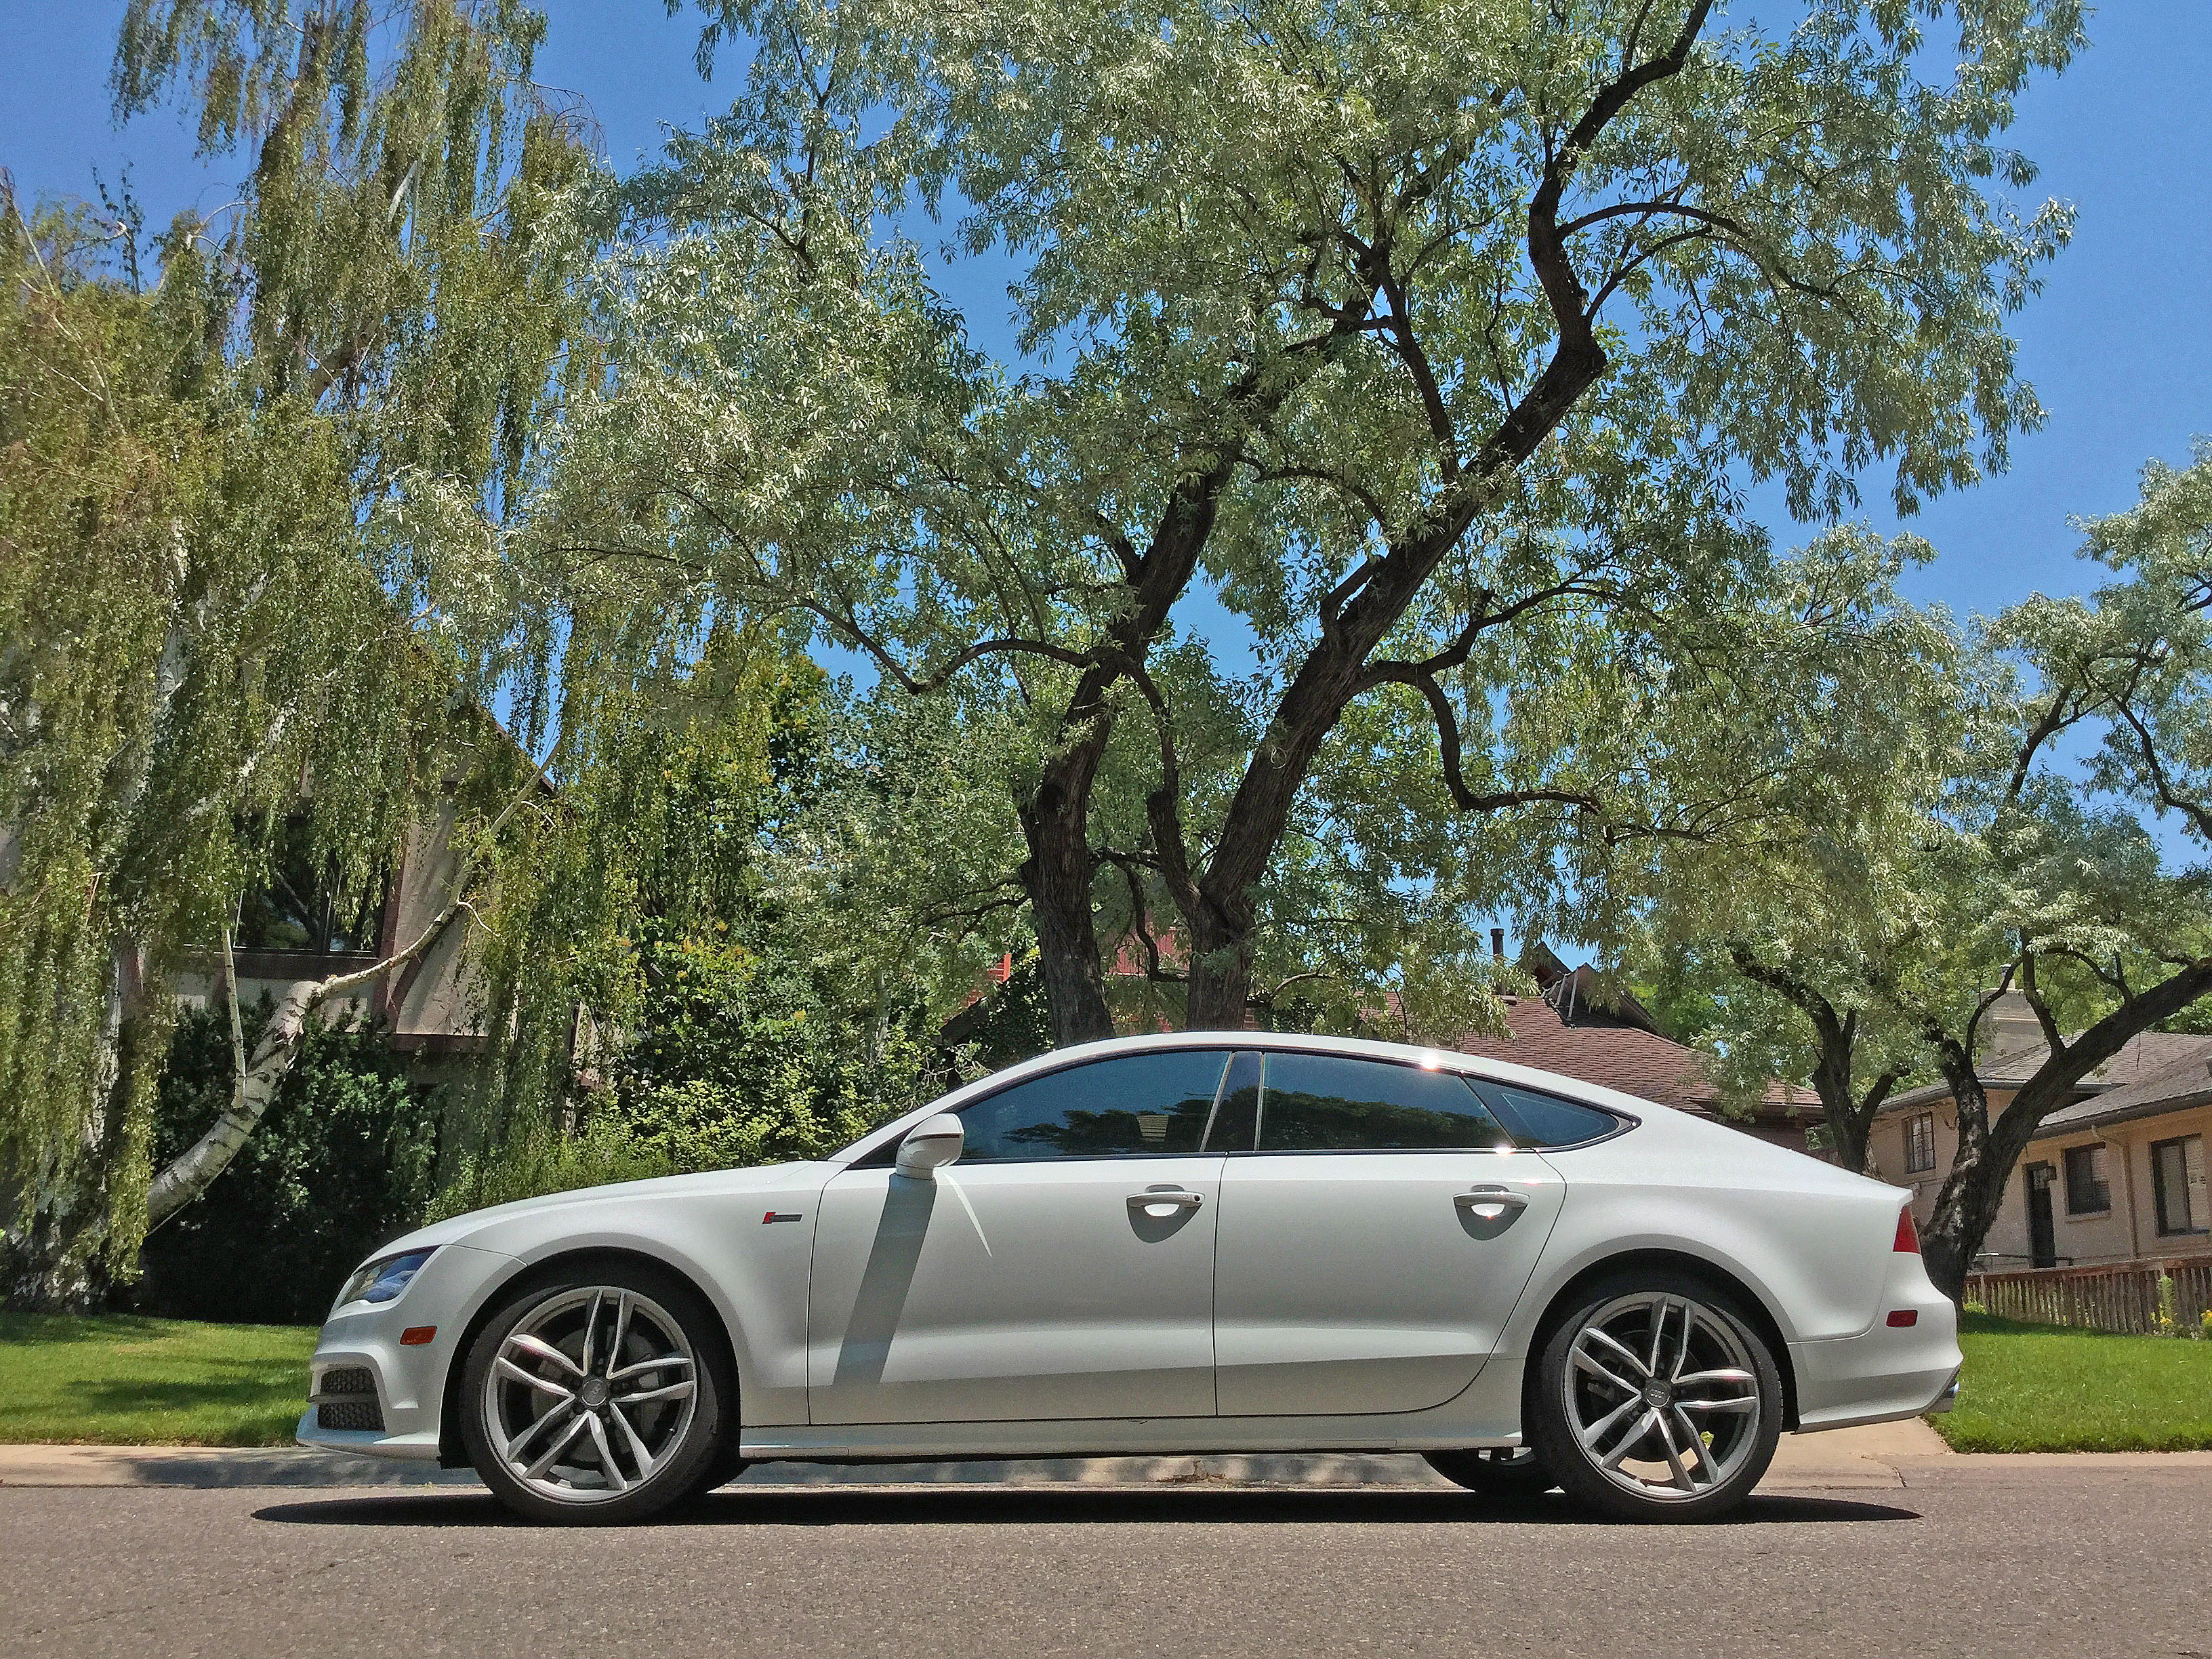 Side view of the 2016 Audi A7 on a quiet street in the Hilltop neighborhood of Denver, CO